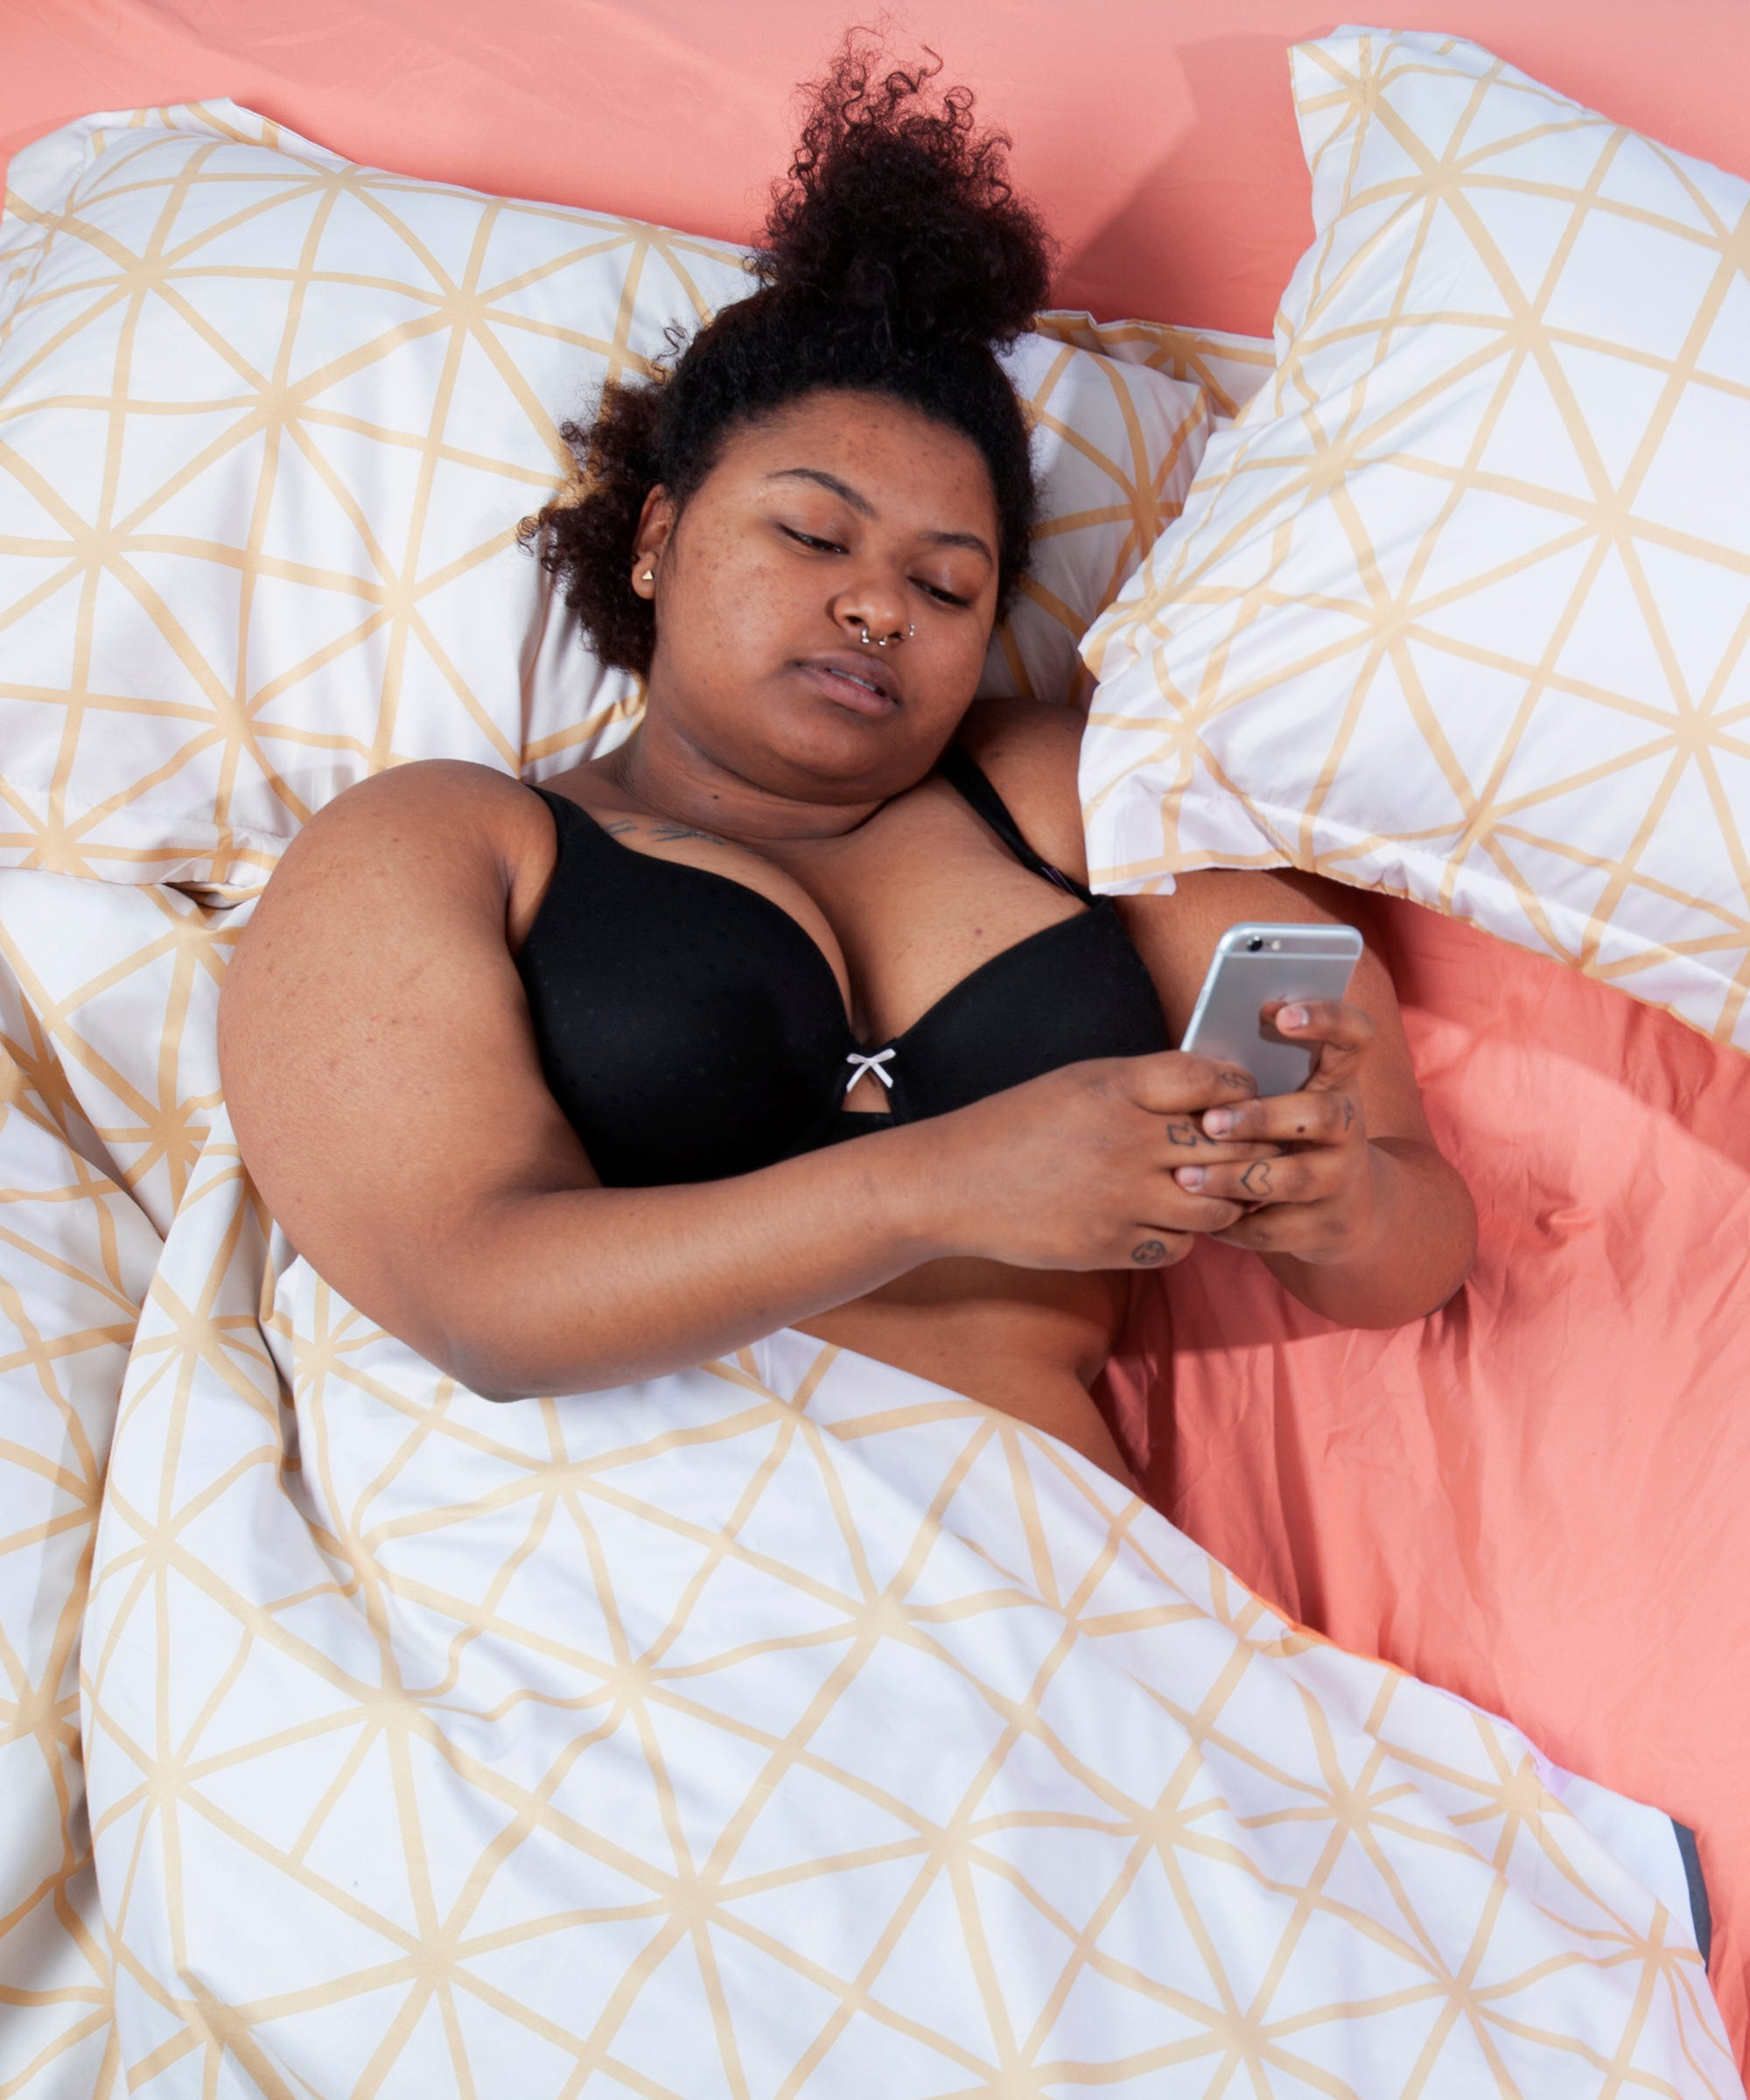 Sleep Apps Can Actually Cause Insomnia & Anxiety, Says Expert